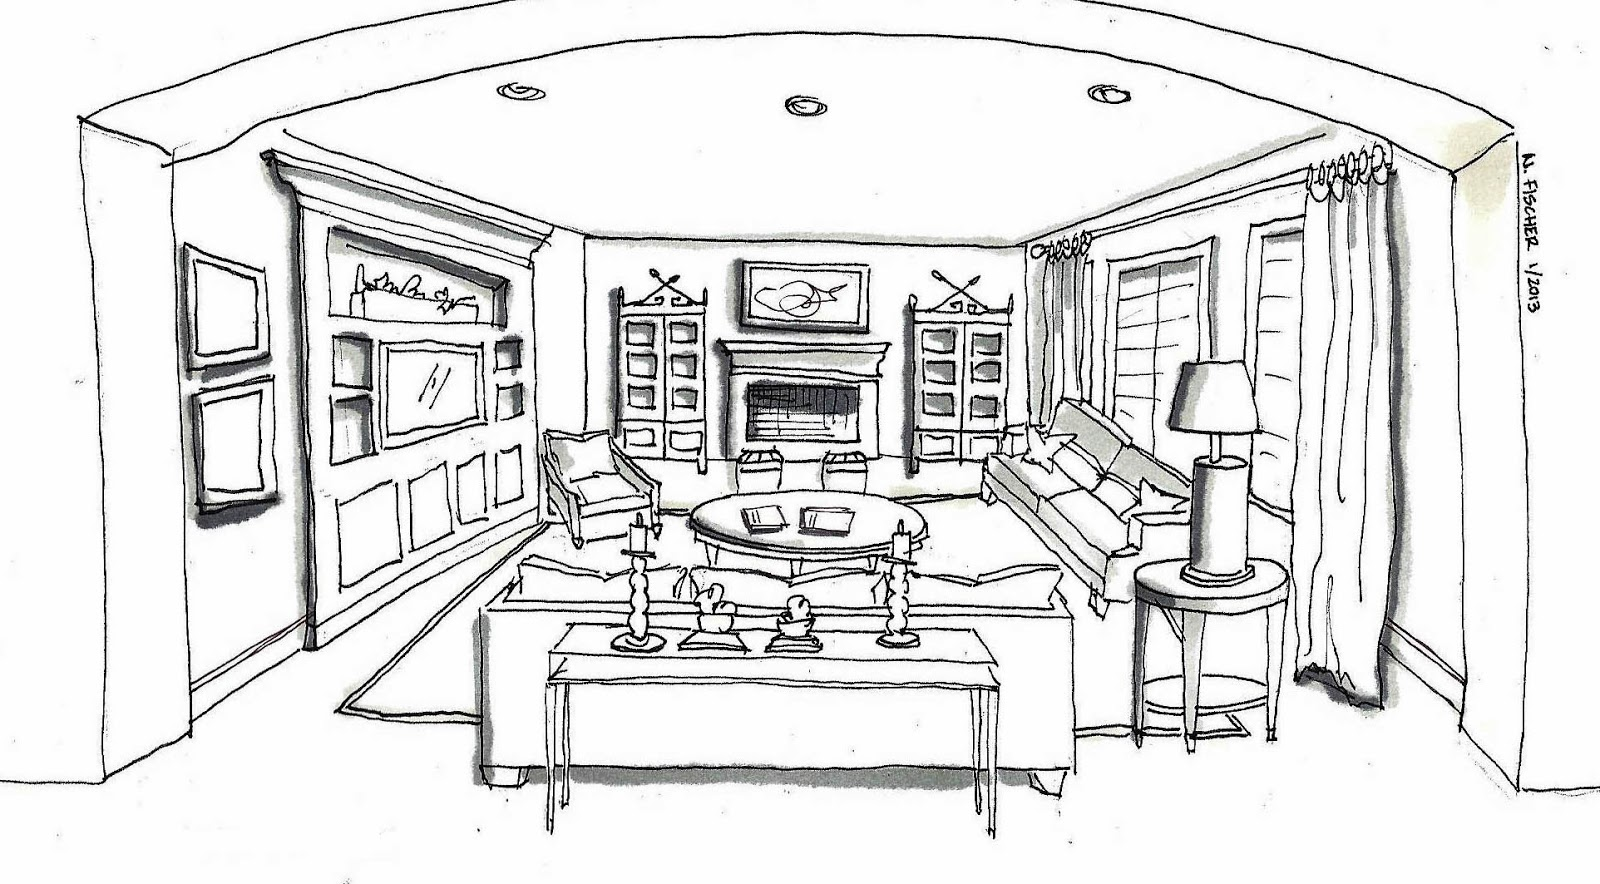 Living room interior design sketch 2017 2018 best cars for Interior design sketches